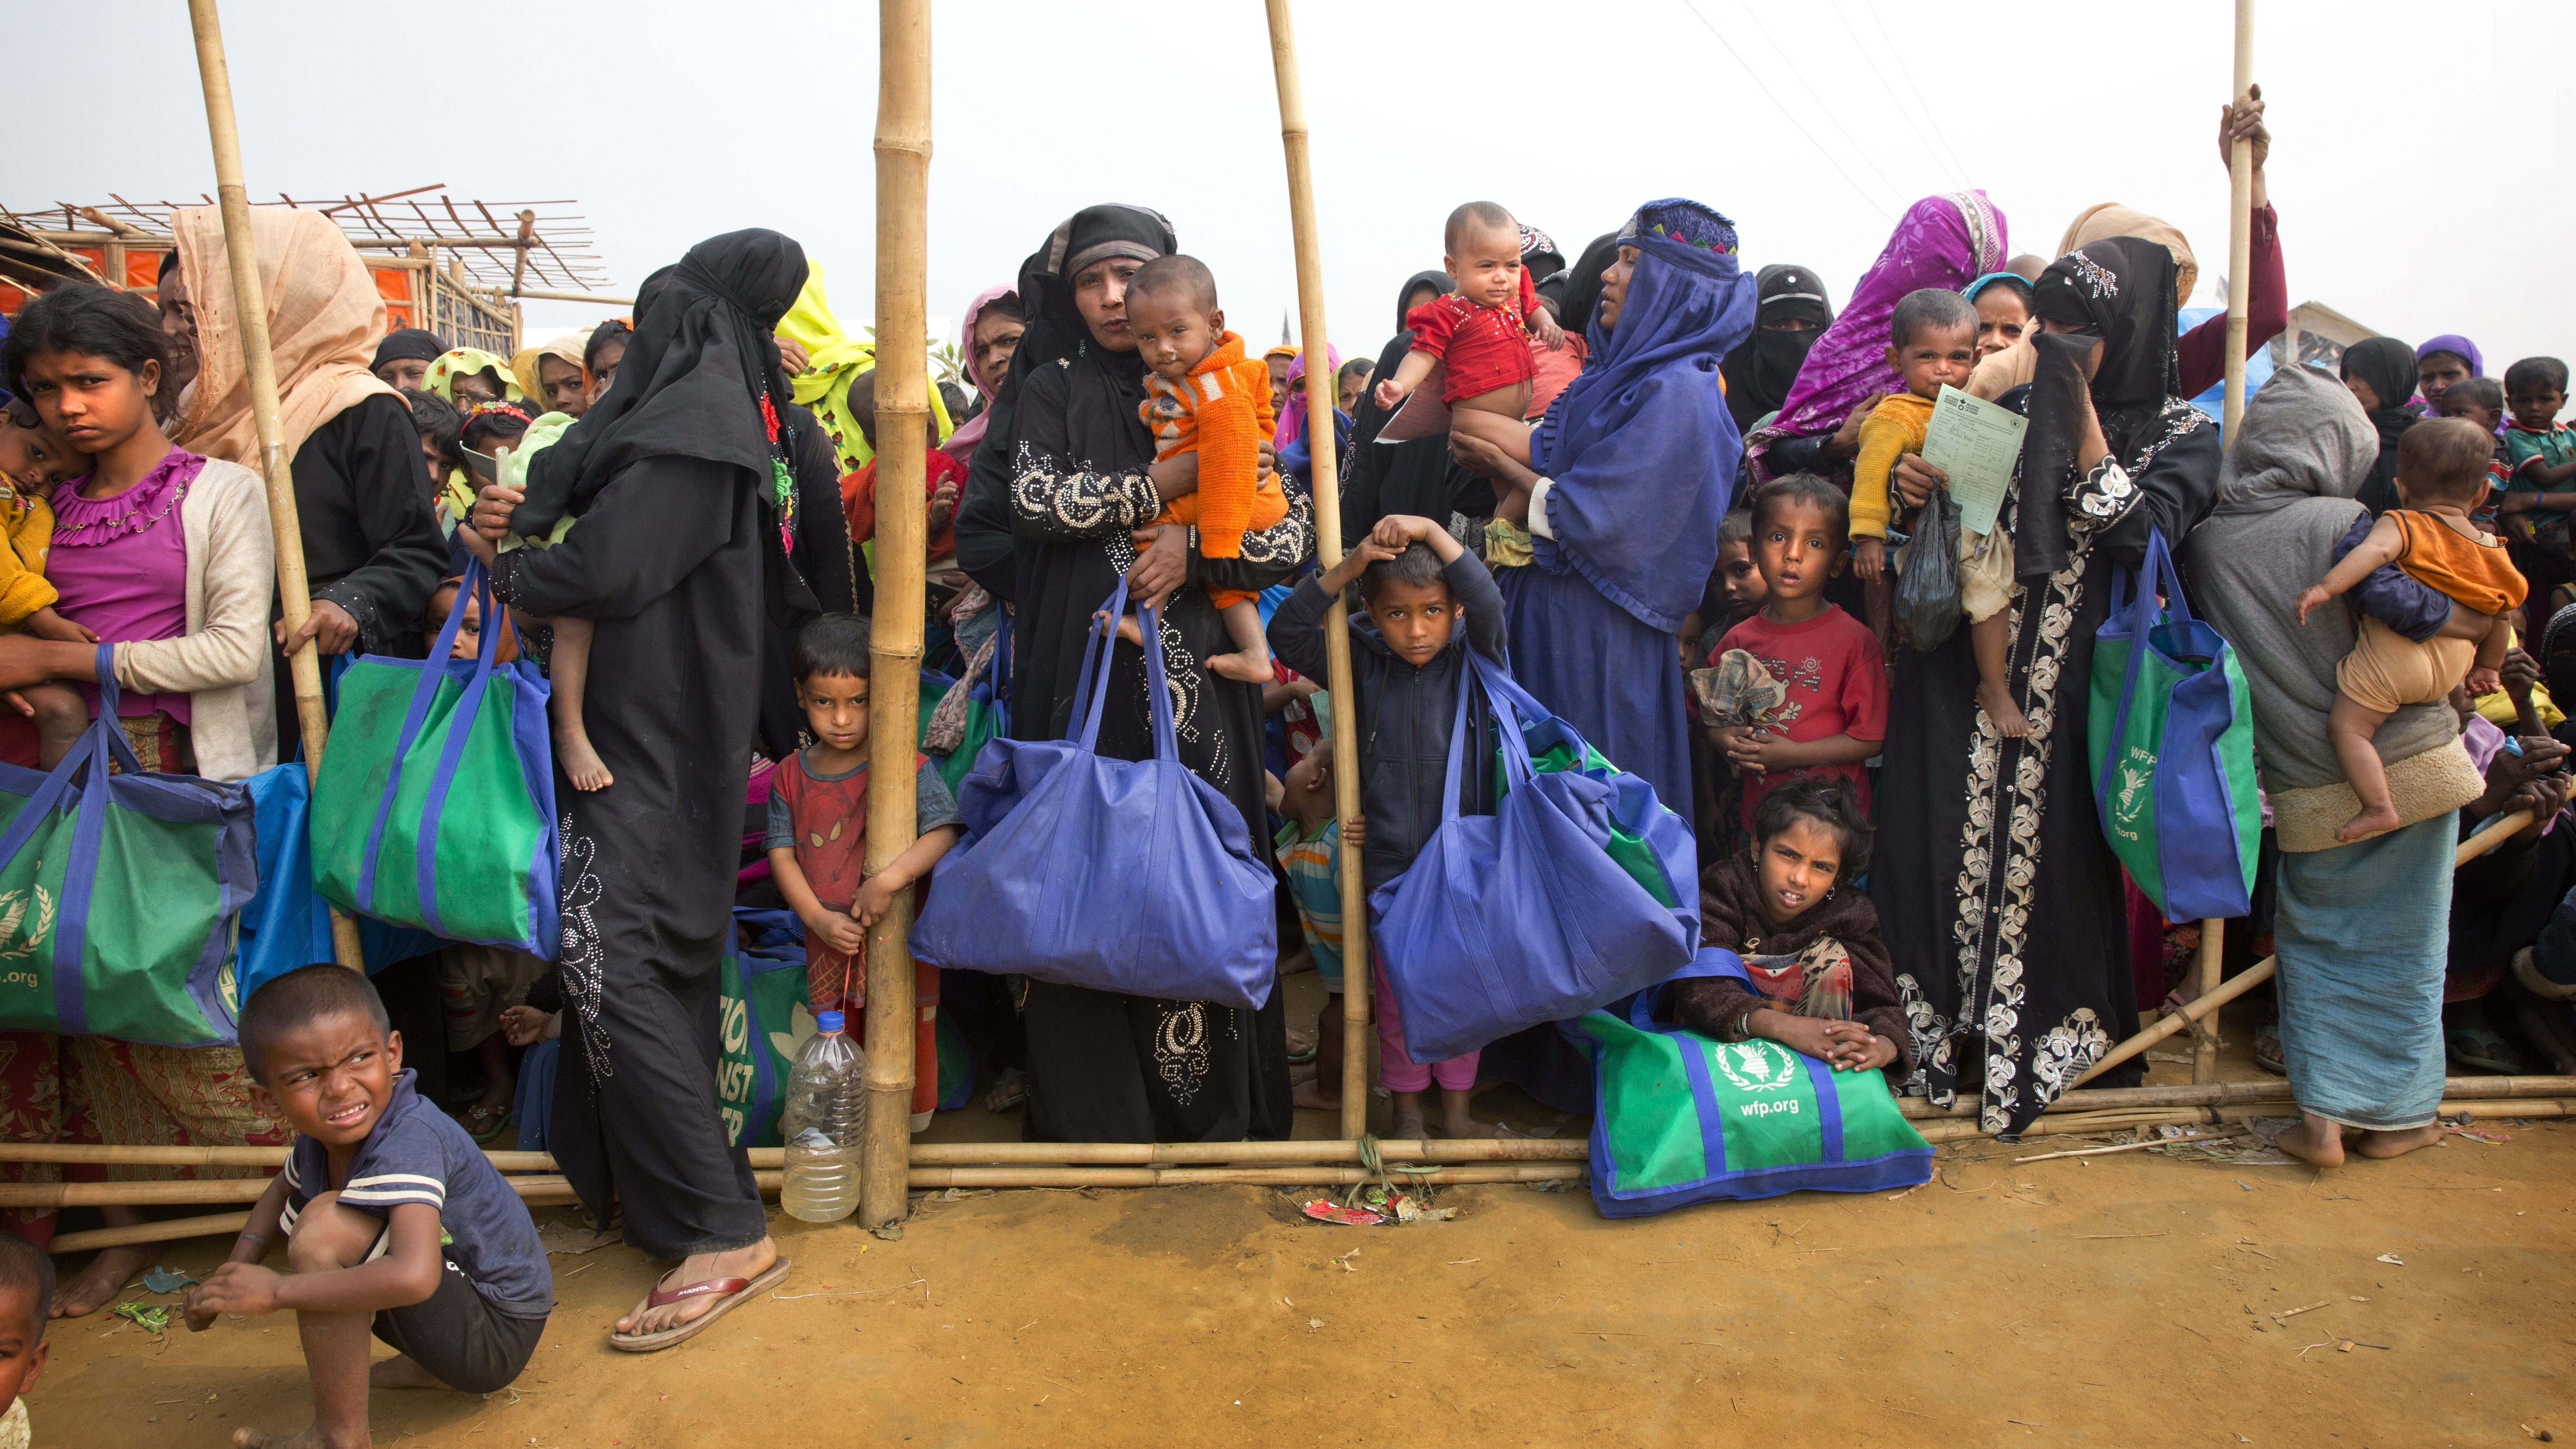 In this Jan. 15, 2018, file photo, Rohingya women stand with their children as they wait for food at the Balukhali refugee camp outside Cox's Bazar, Bangladesh. (AP Photo/Manish Swarup, File)